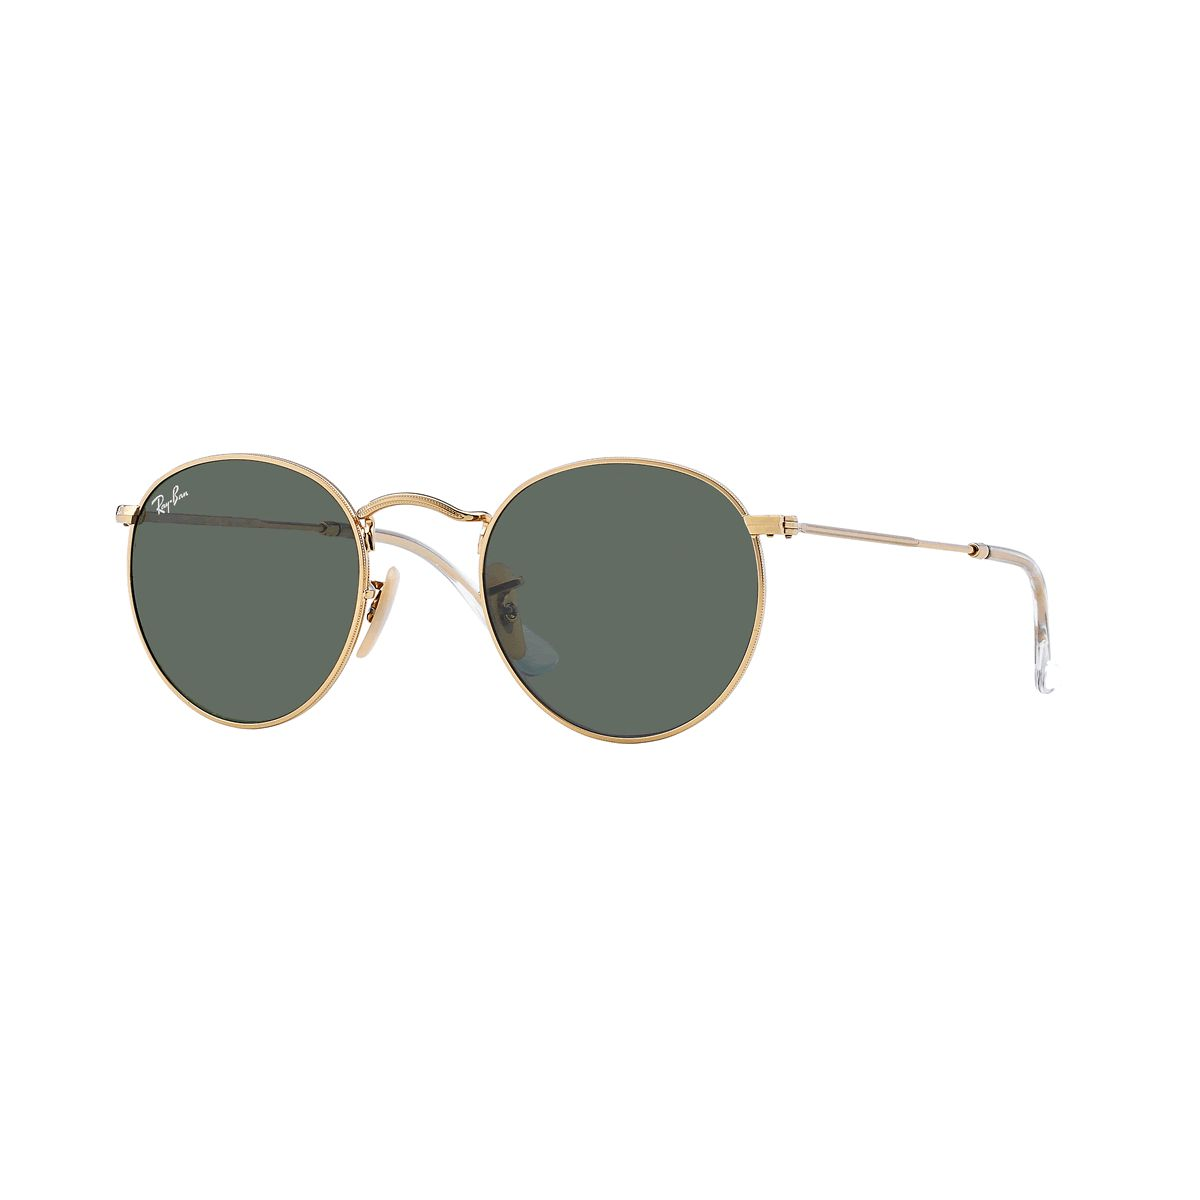 e5c1ae2a53 Ray-Ban Sunglasses - Mens   Womens Ray-Bans - Macy s